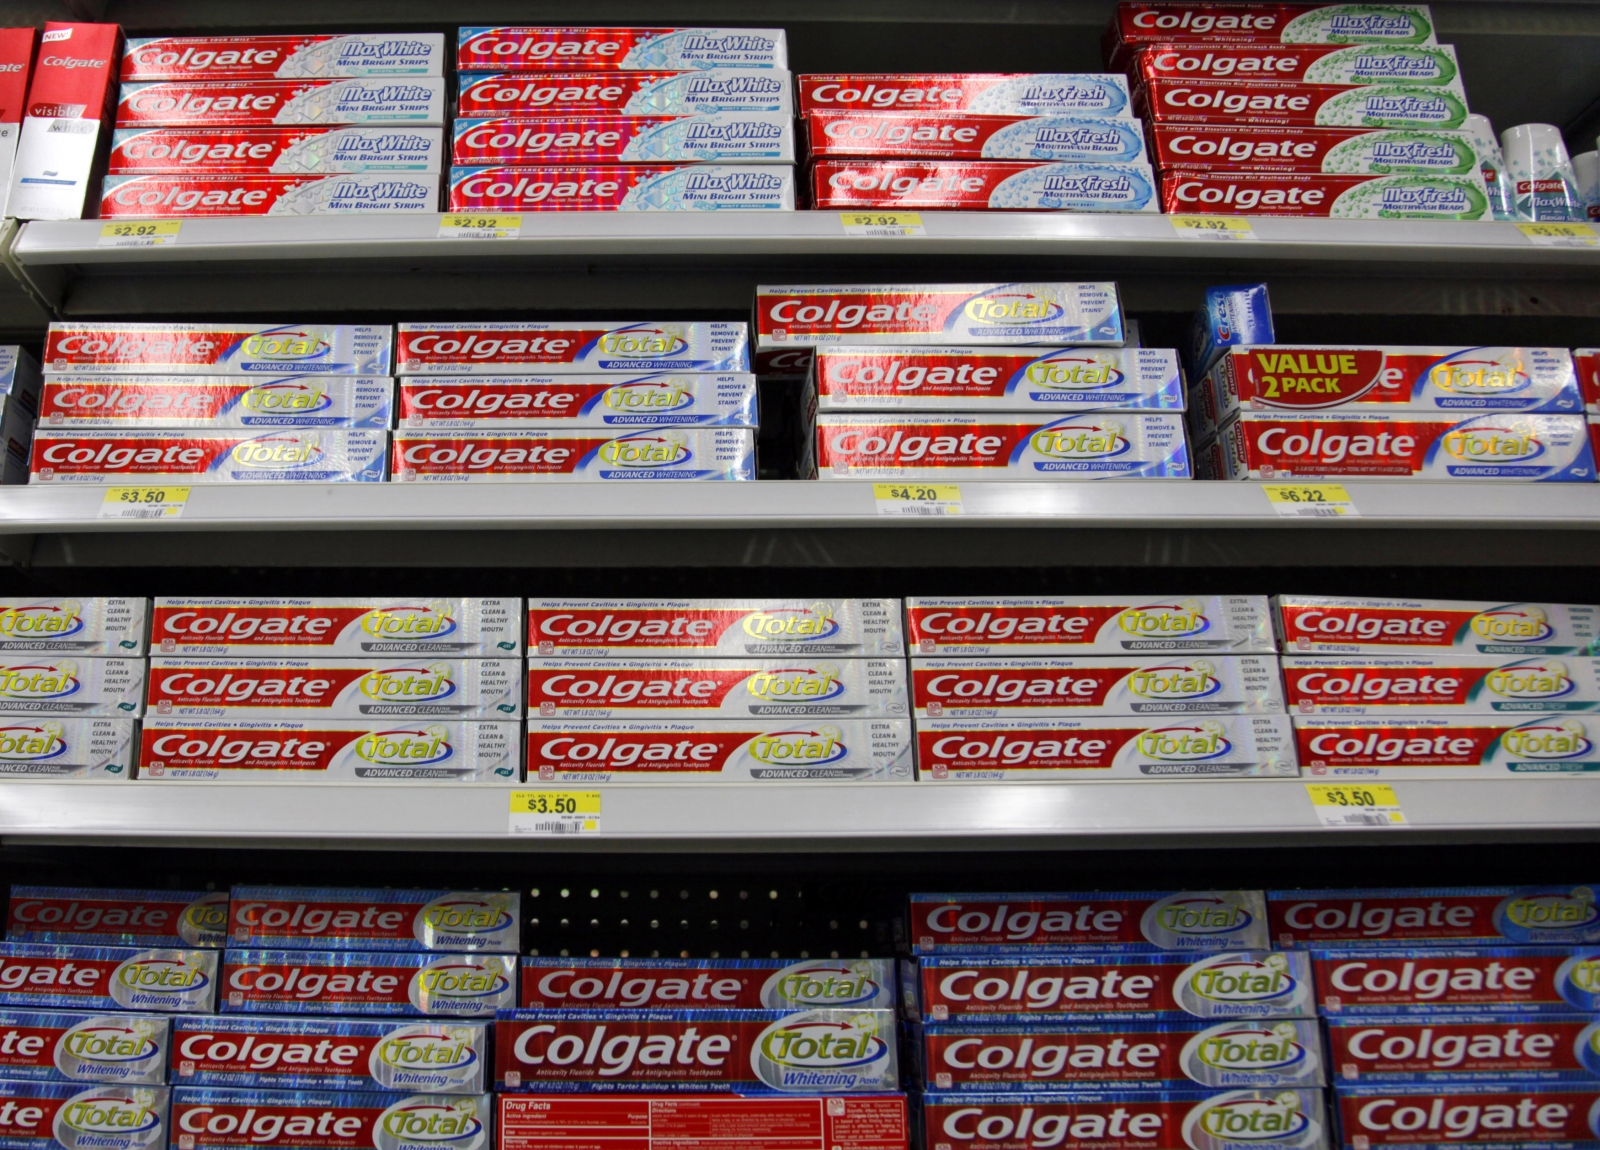 Boxes of Colgate toothpaste are displayed on store shelves in Westminster, Colorado